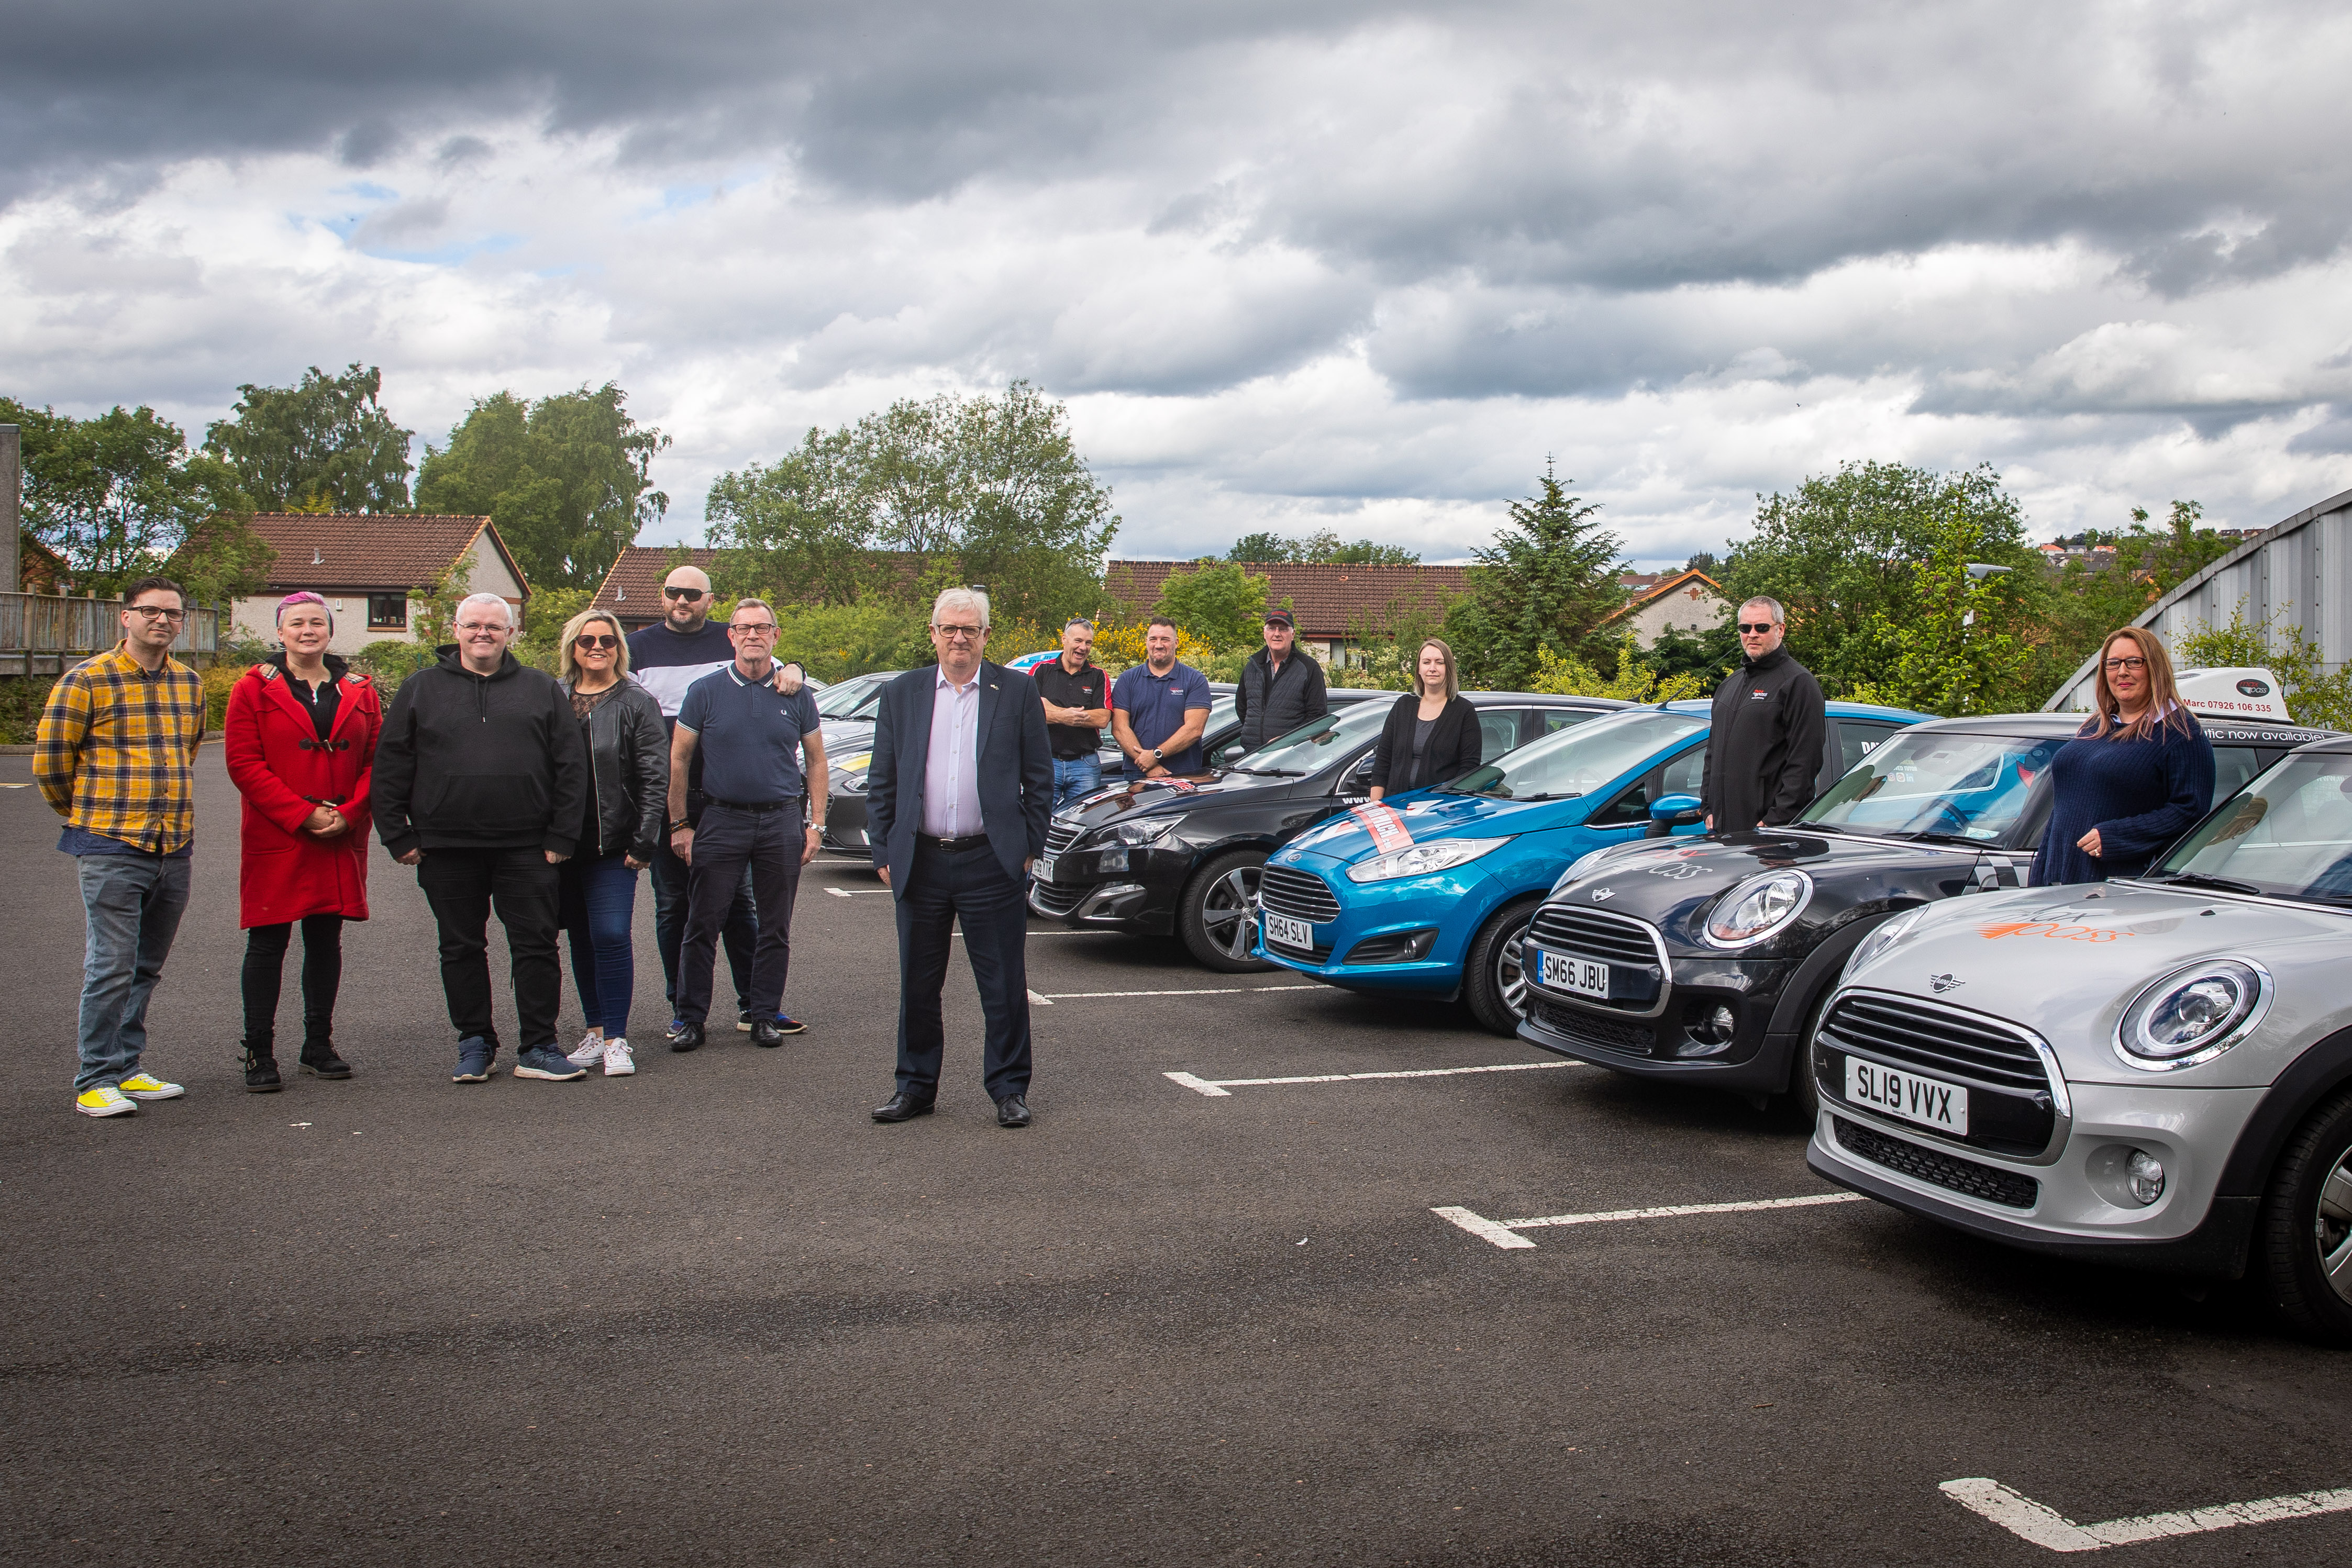 MP Douglas Chapman met with driving instructors to discuss the problems.